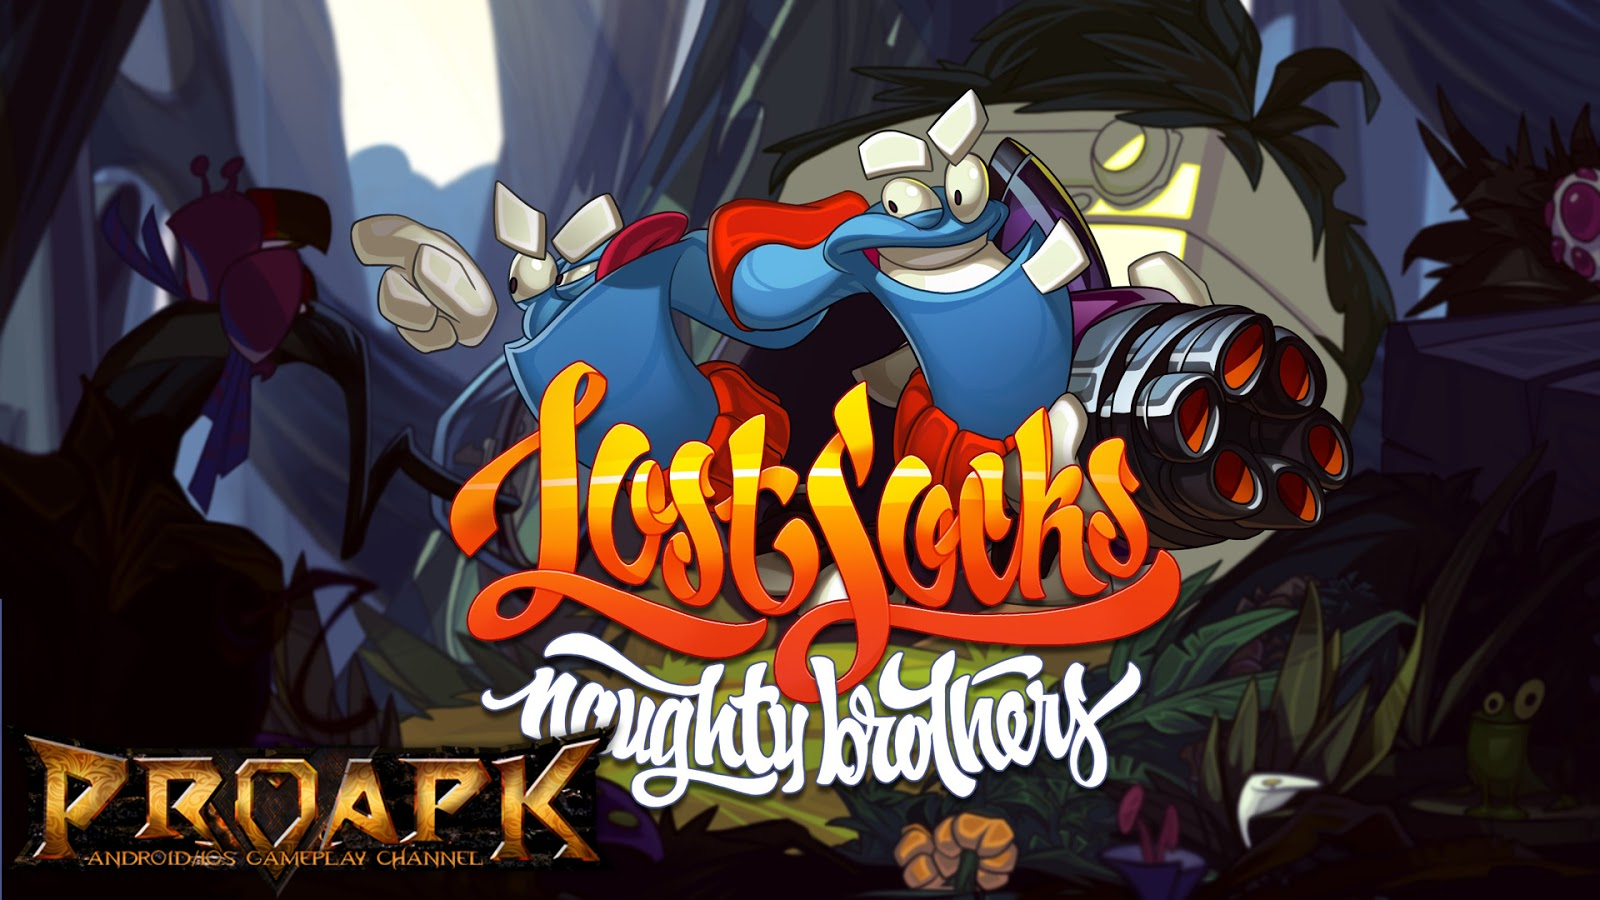 Lost Socks: Naughty Brothers